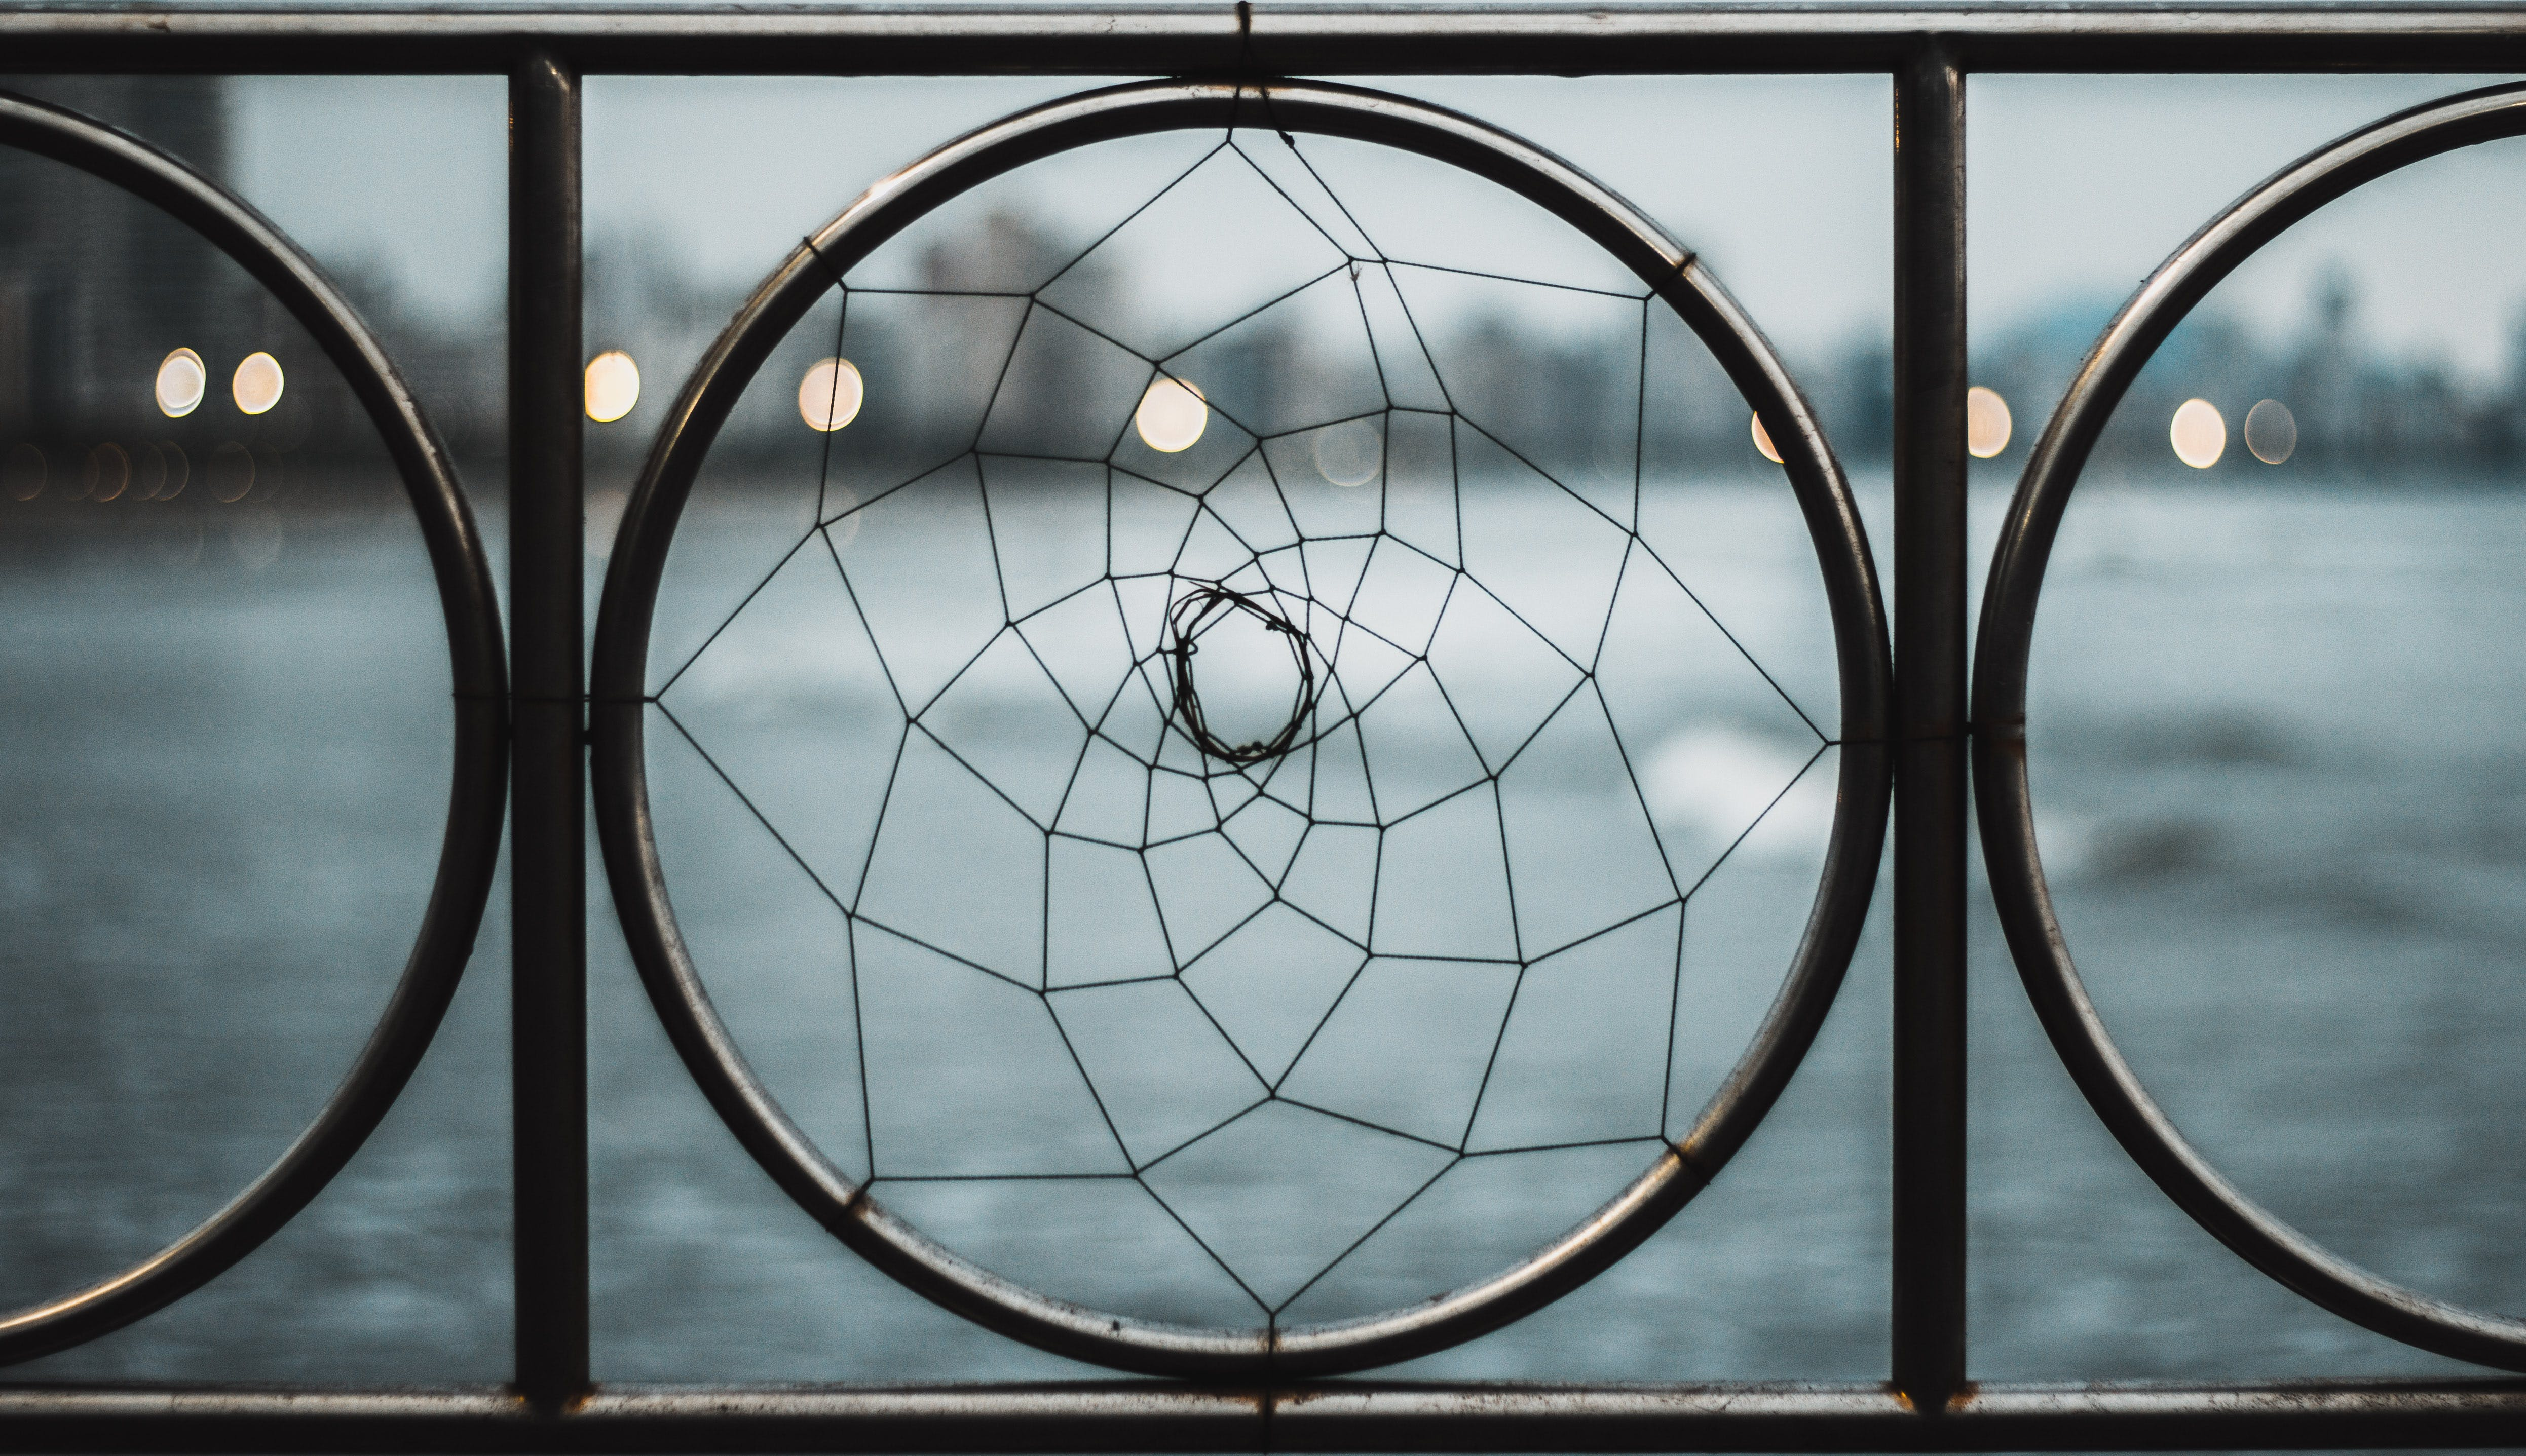 Closeup Photo of Black Wrought Iron Frame Near Body of Water